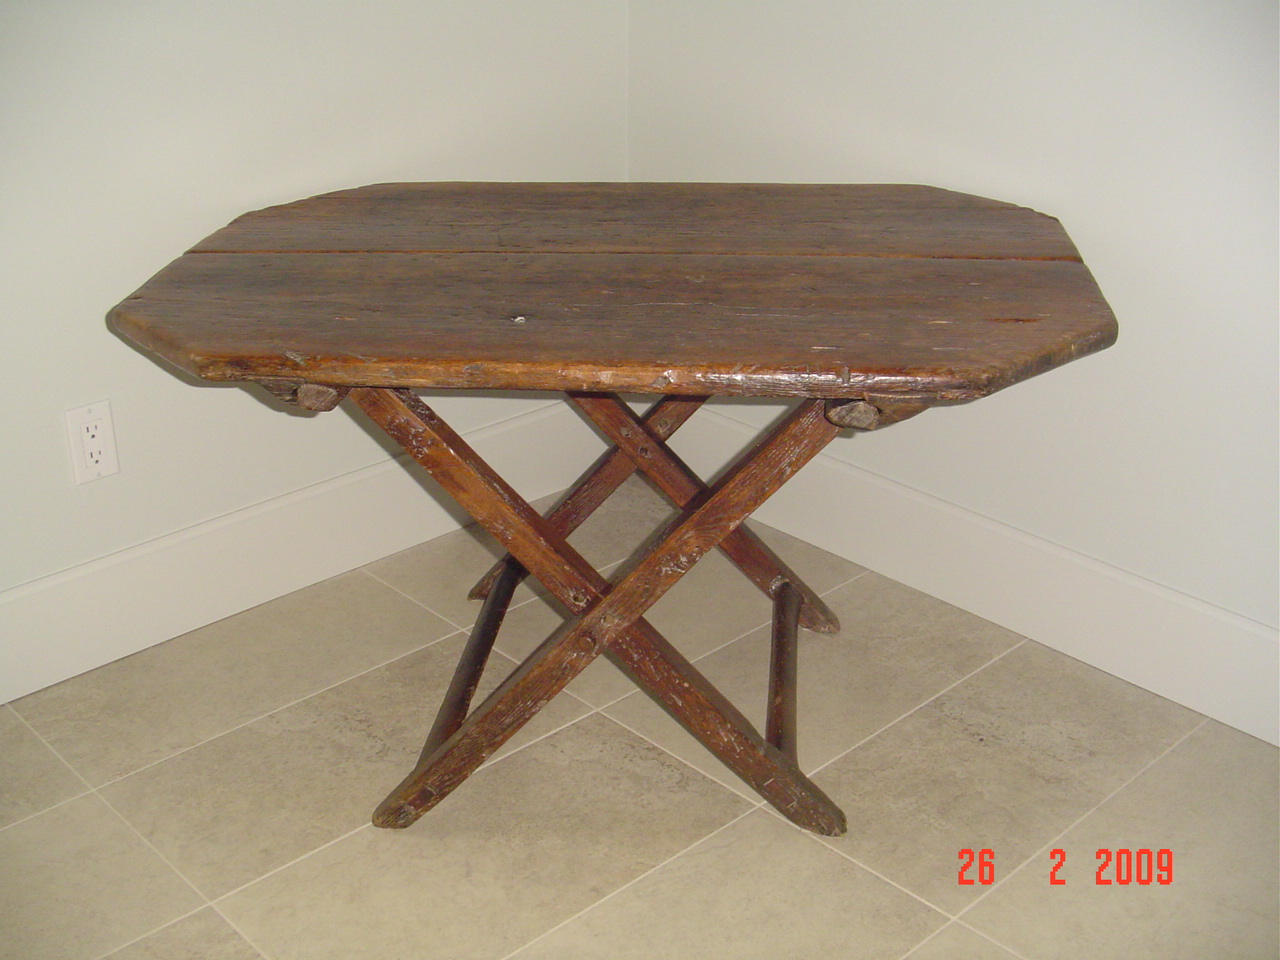 PRIMITIVE TRESTLE TABLE Canadian pine wood furniture  : ori14579165830571145916tableC3A0trC3A9teaux1 from www.antiques.com size 1280 x 960 jpeg 315kB